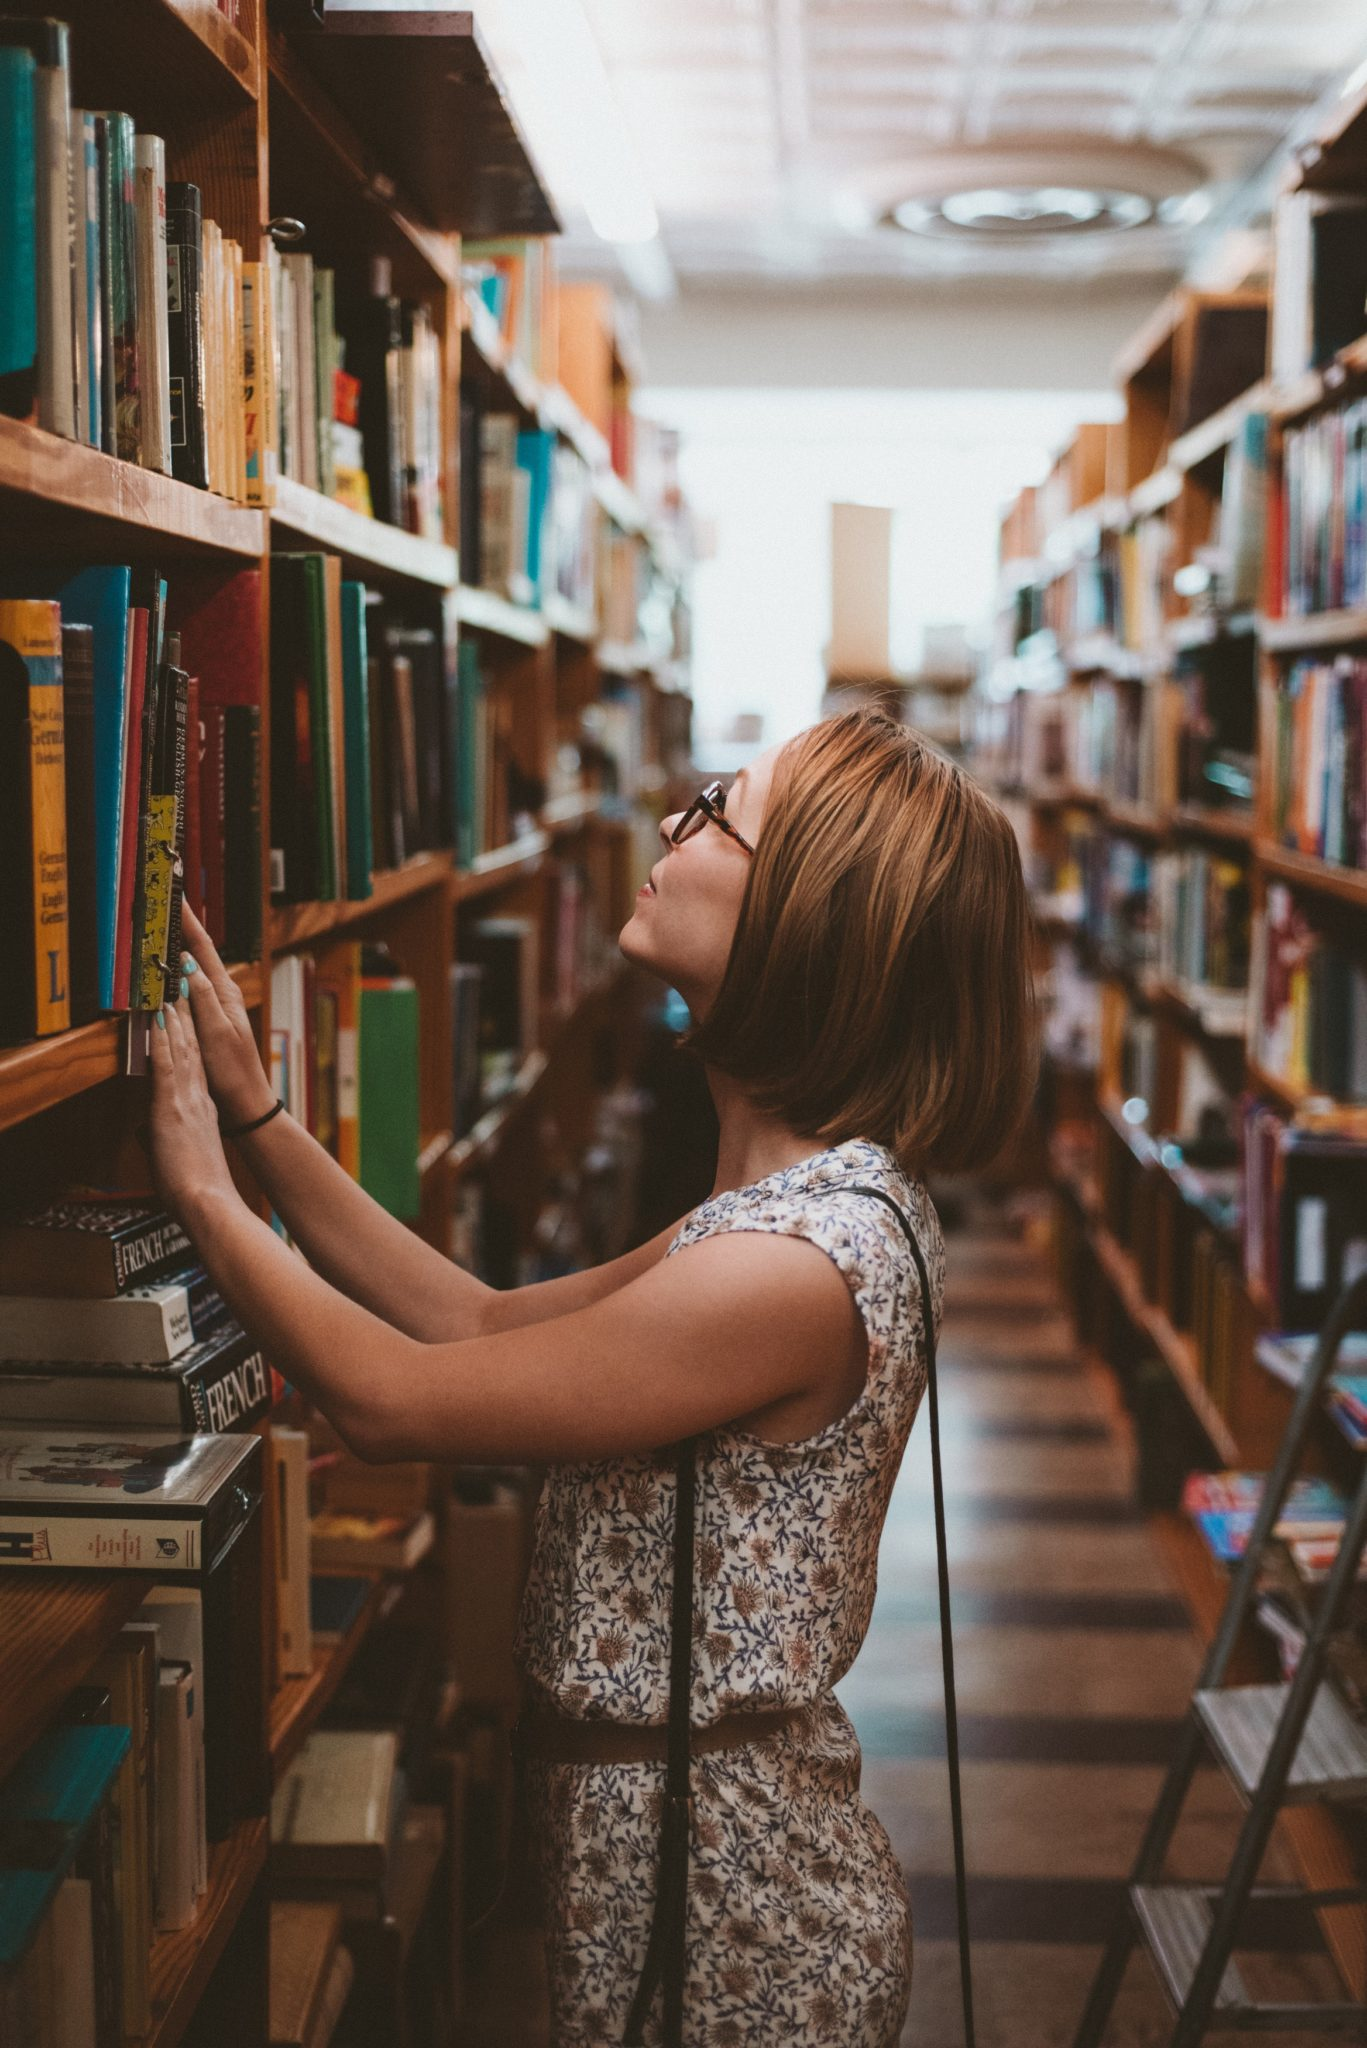 A woman standing in a library holding her hands in a bookshelf,searching for a book, is an example of lead nurturing programs for education of an effective campaign.